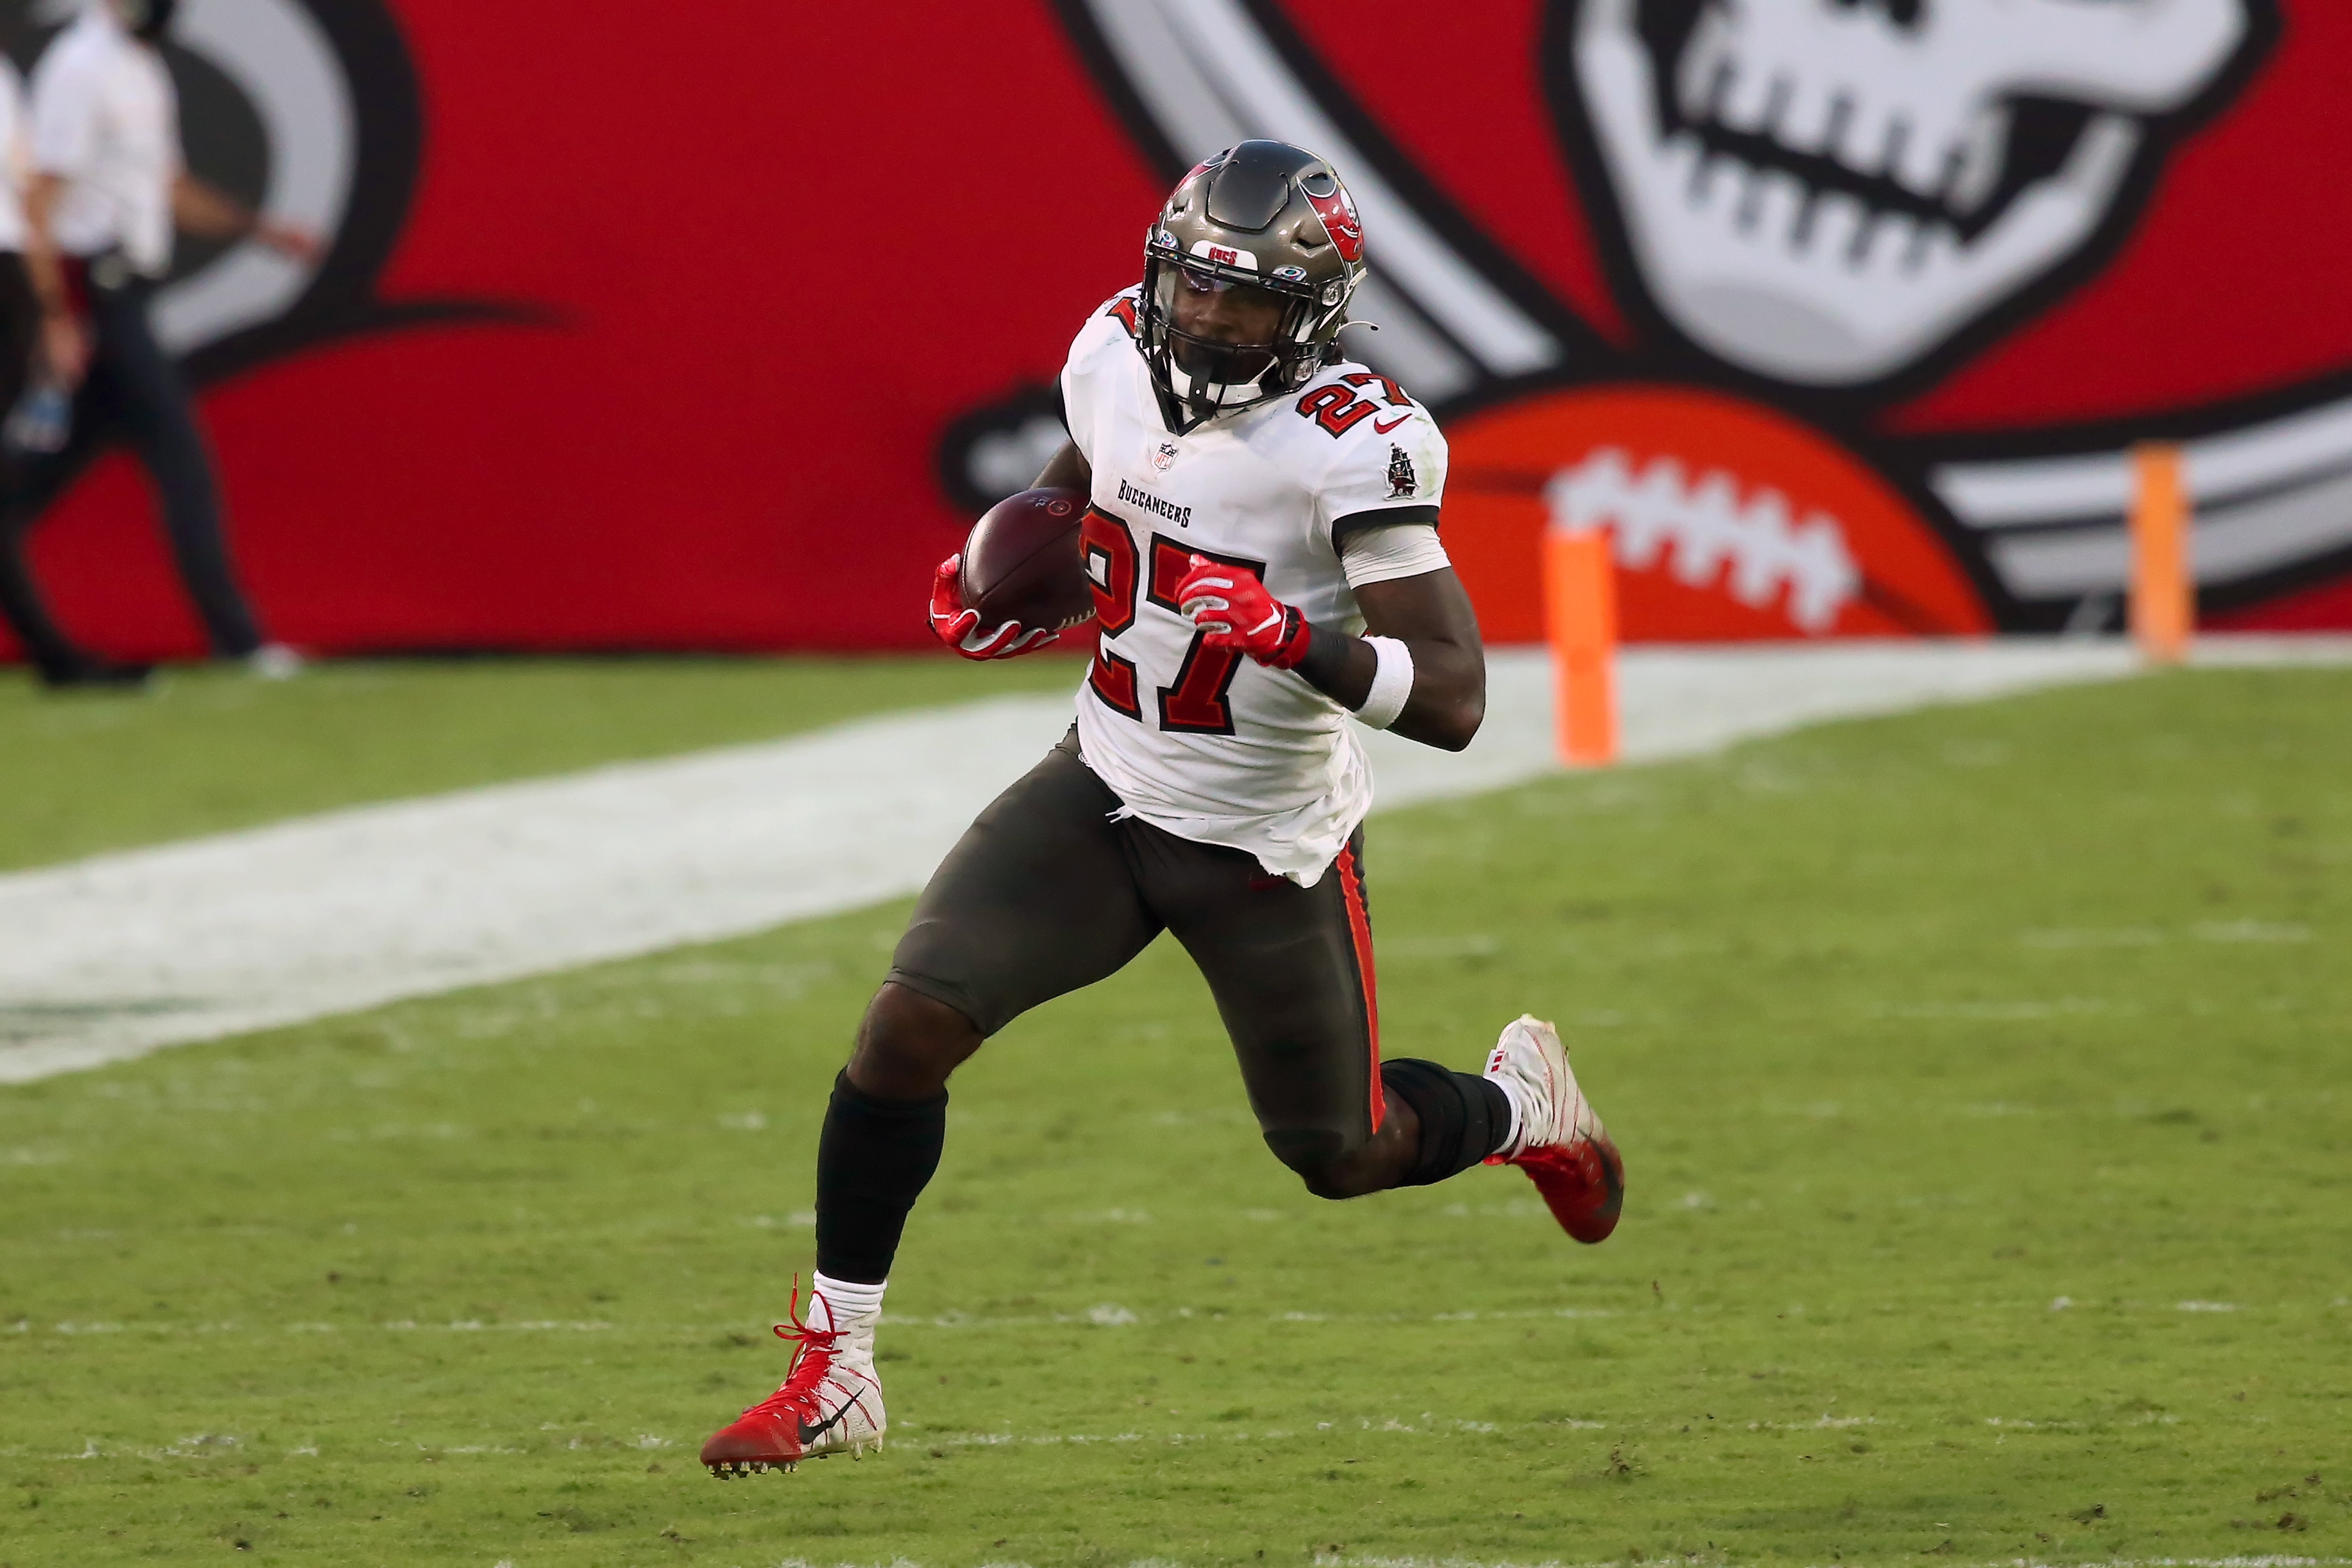 Nfl Week 7 Yahoo Fantasy Football Rankings Flex Position